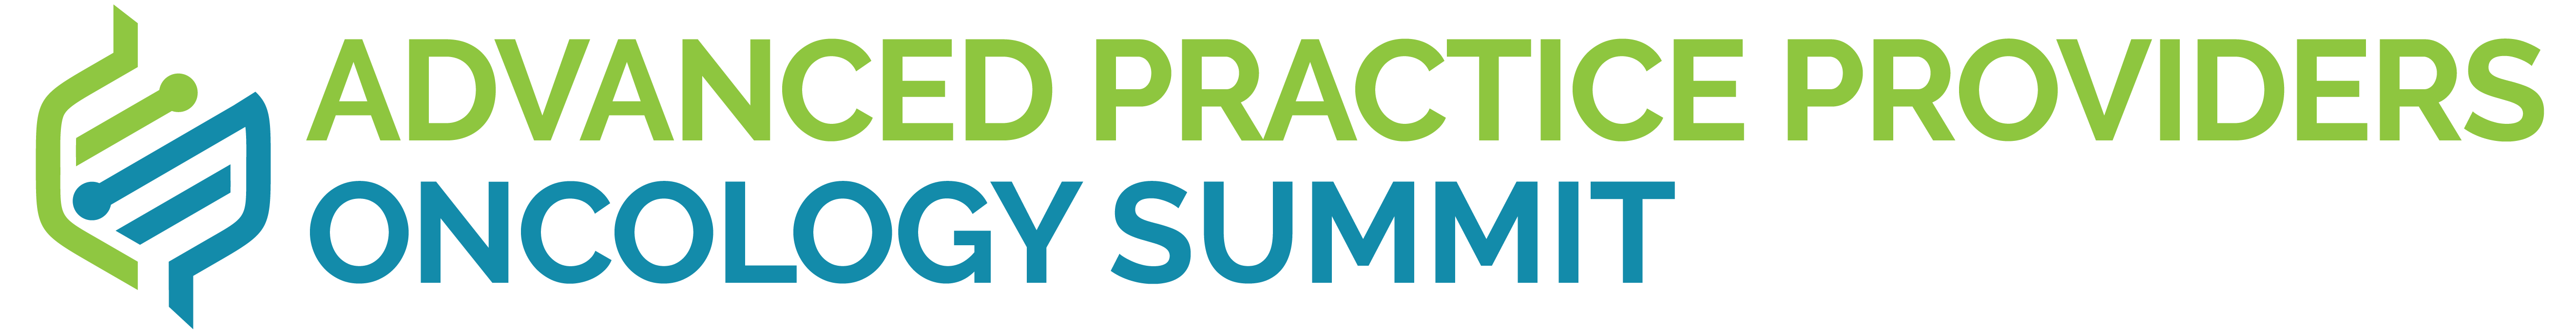 Advanced Practice Providers Oncology Summit